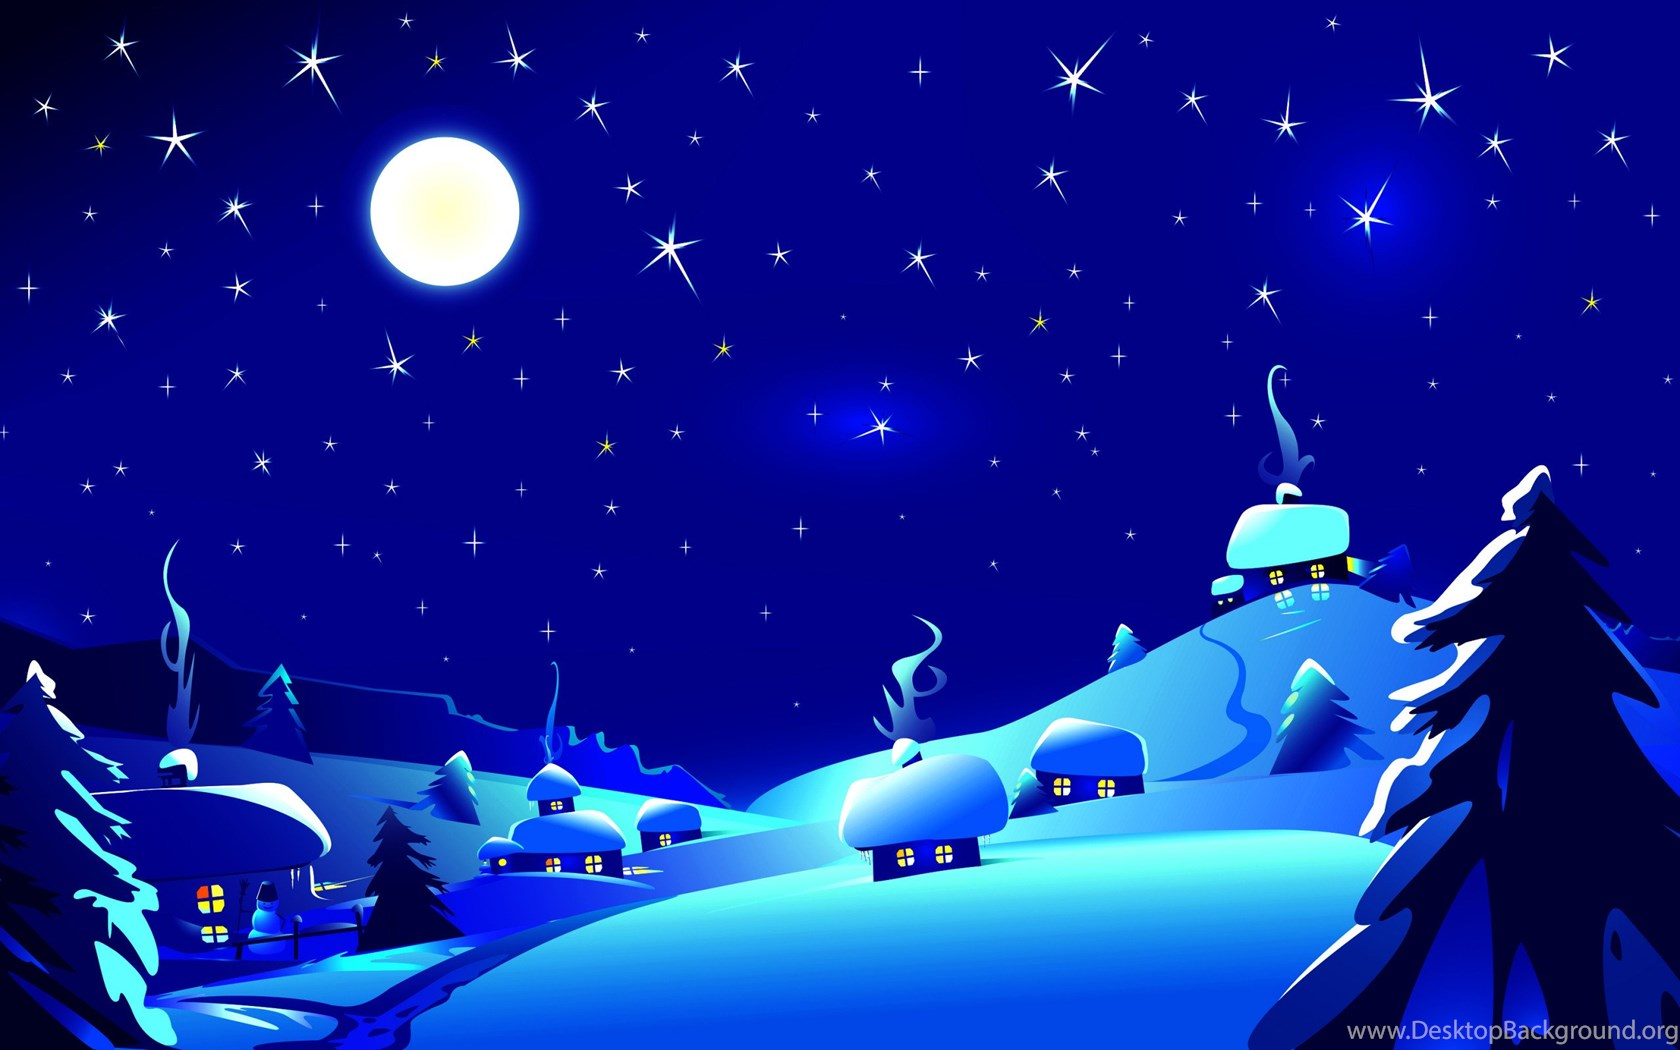 Christmas Magic Hd Wallpapers: The Magic Of The Christmas Night Wallpapers Desktop Background